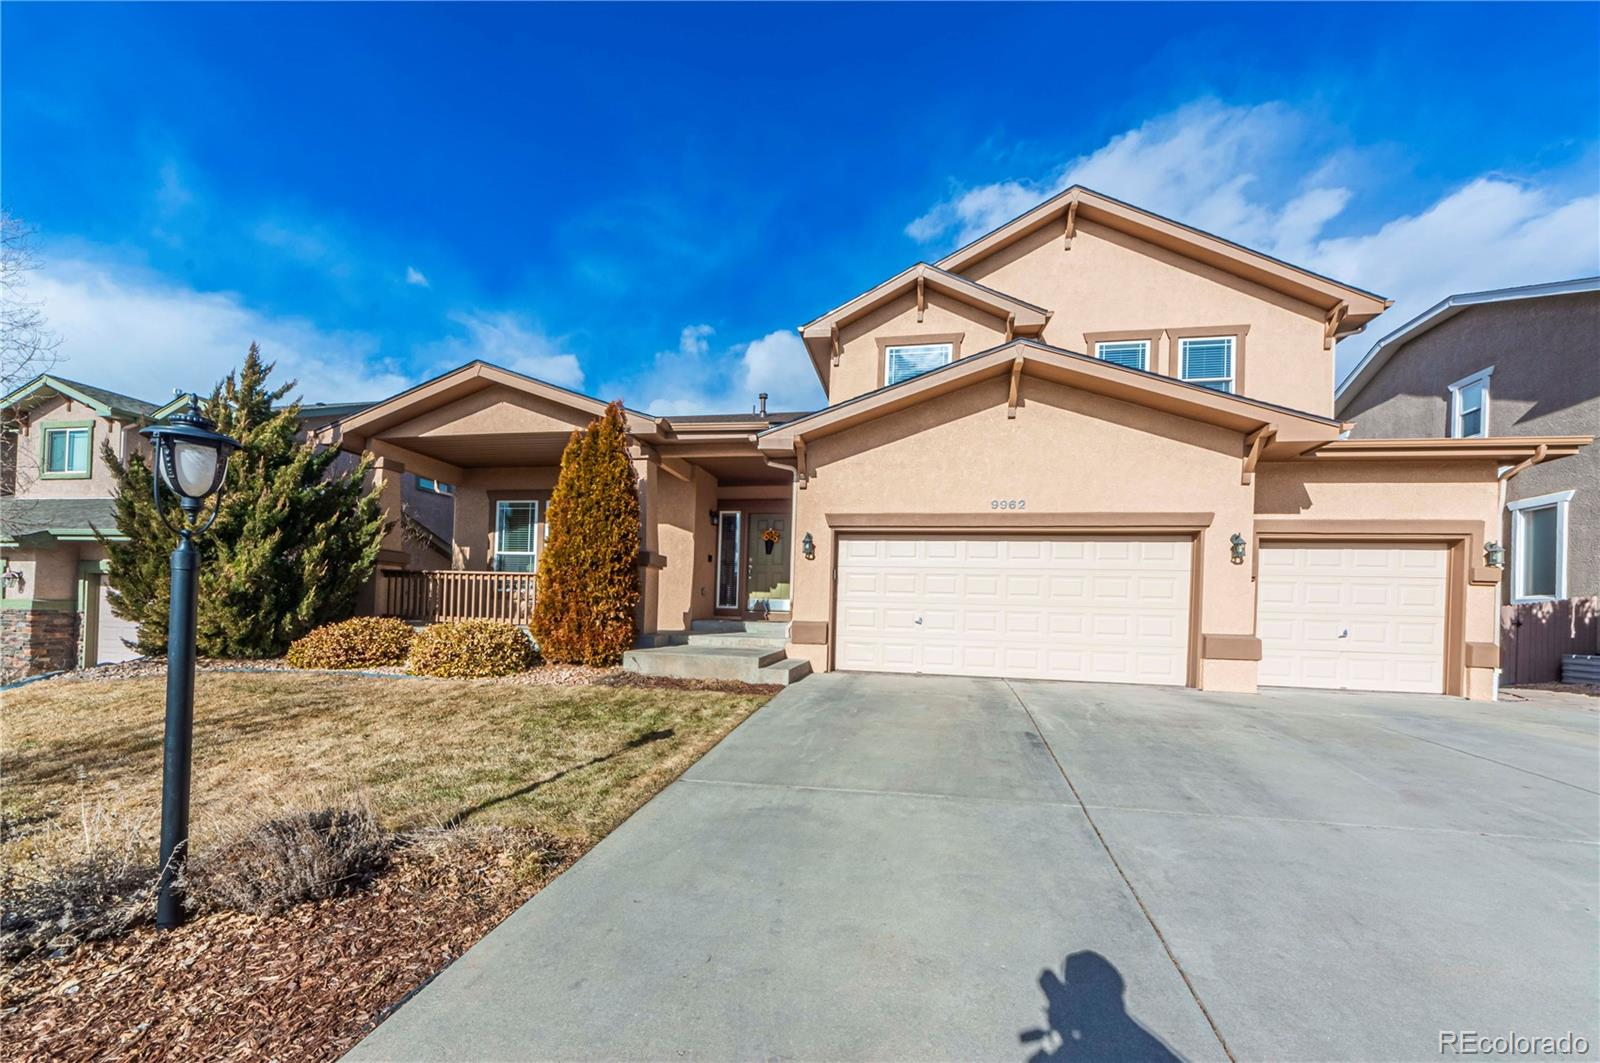 MLS# 3600079 - 38 - 9962 Pinedale Drive, Colorado Springs, CO 80920